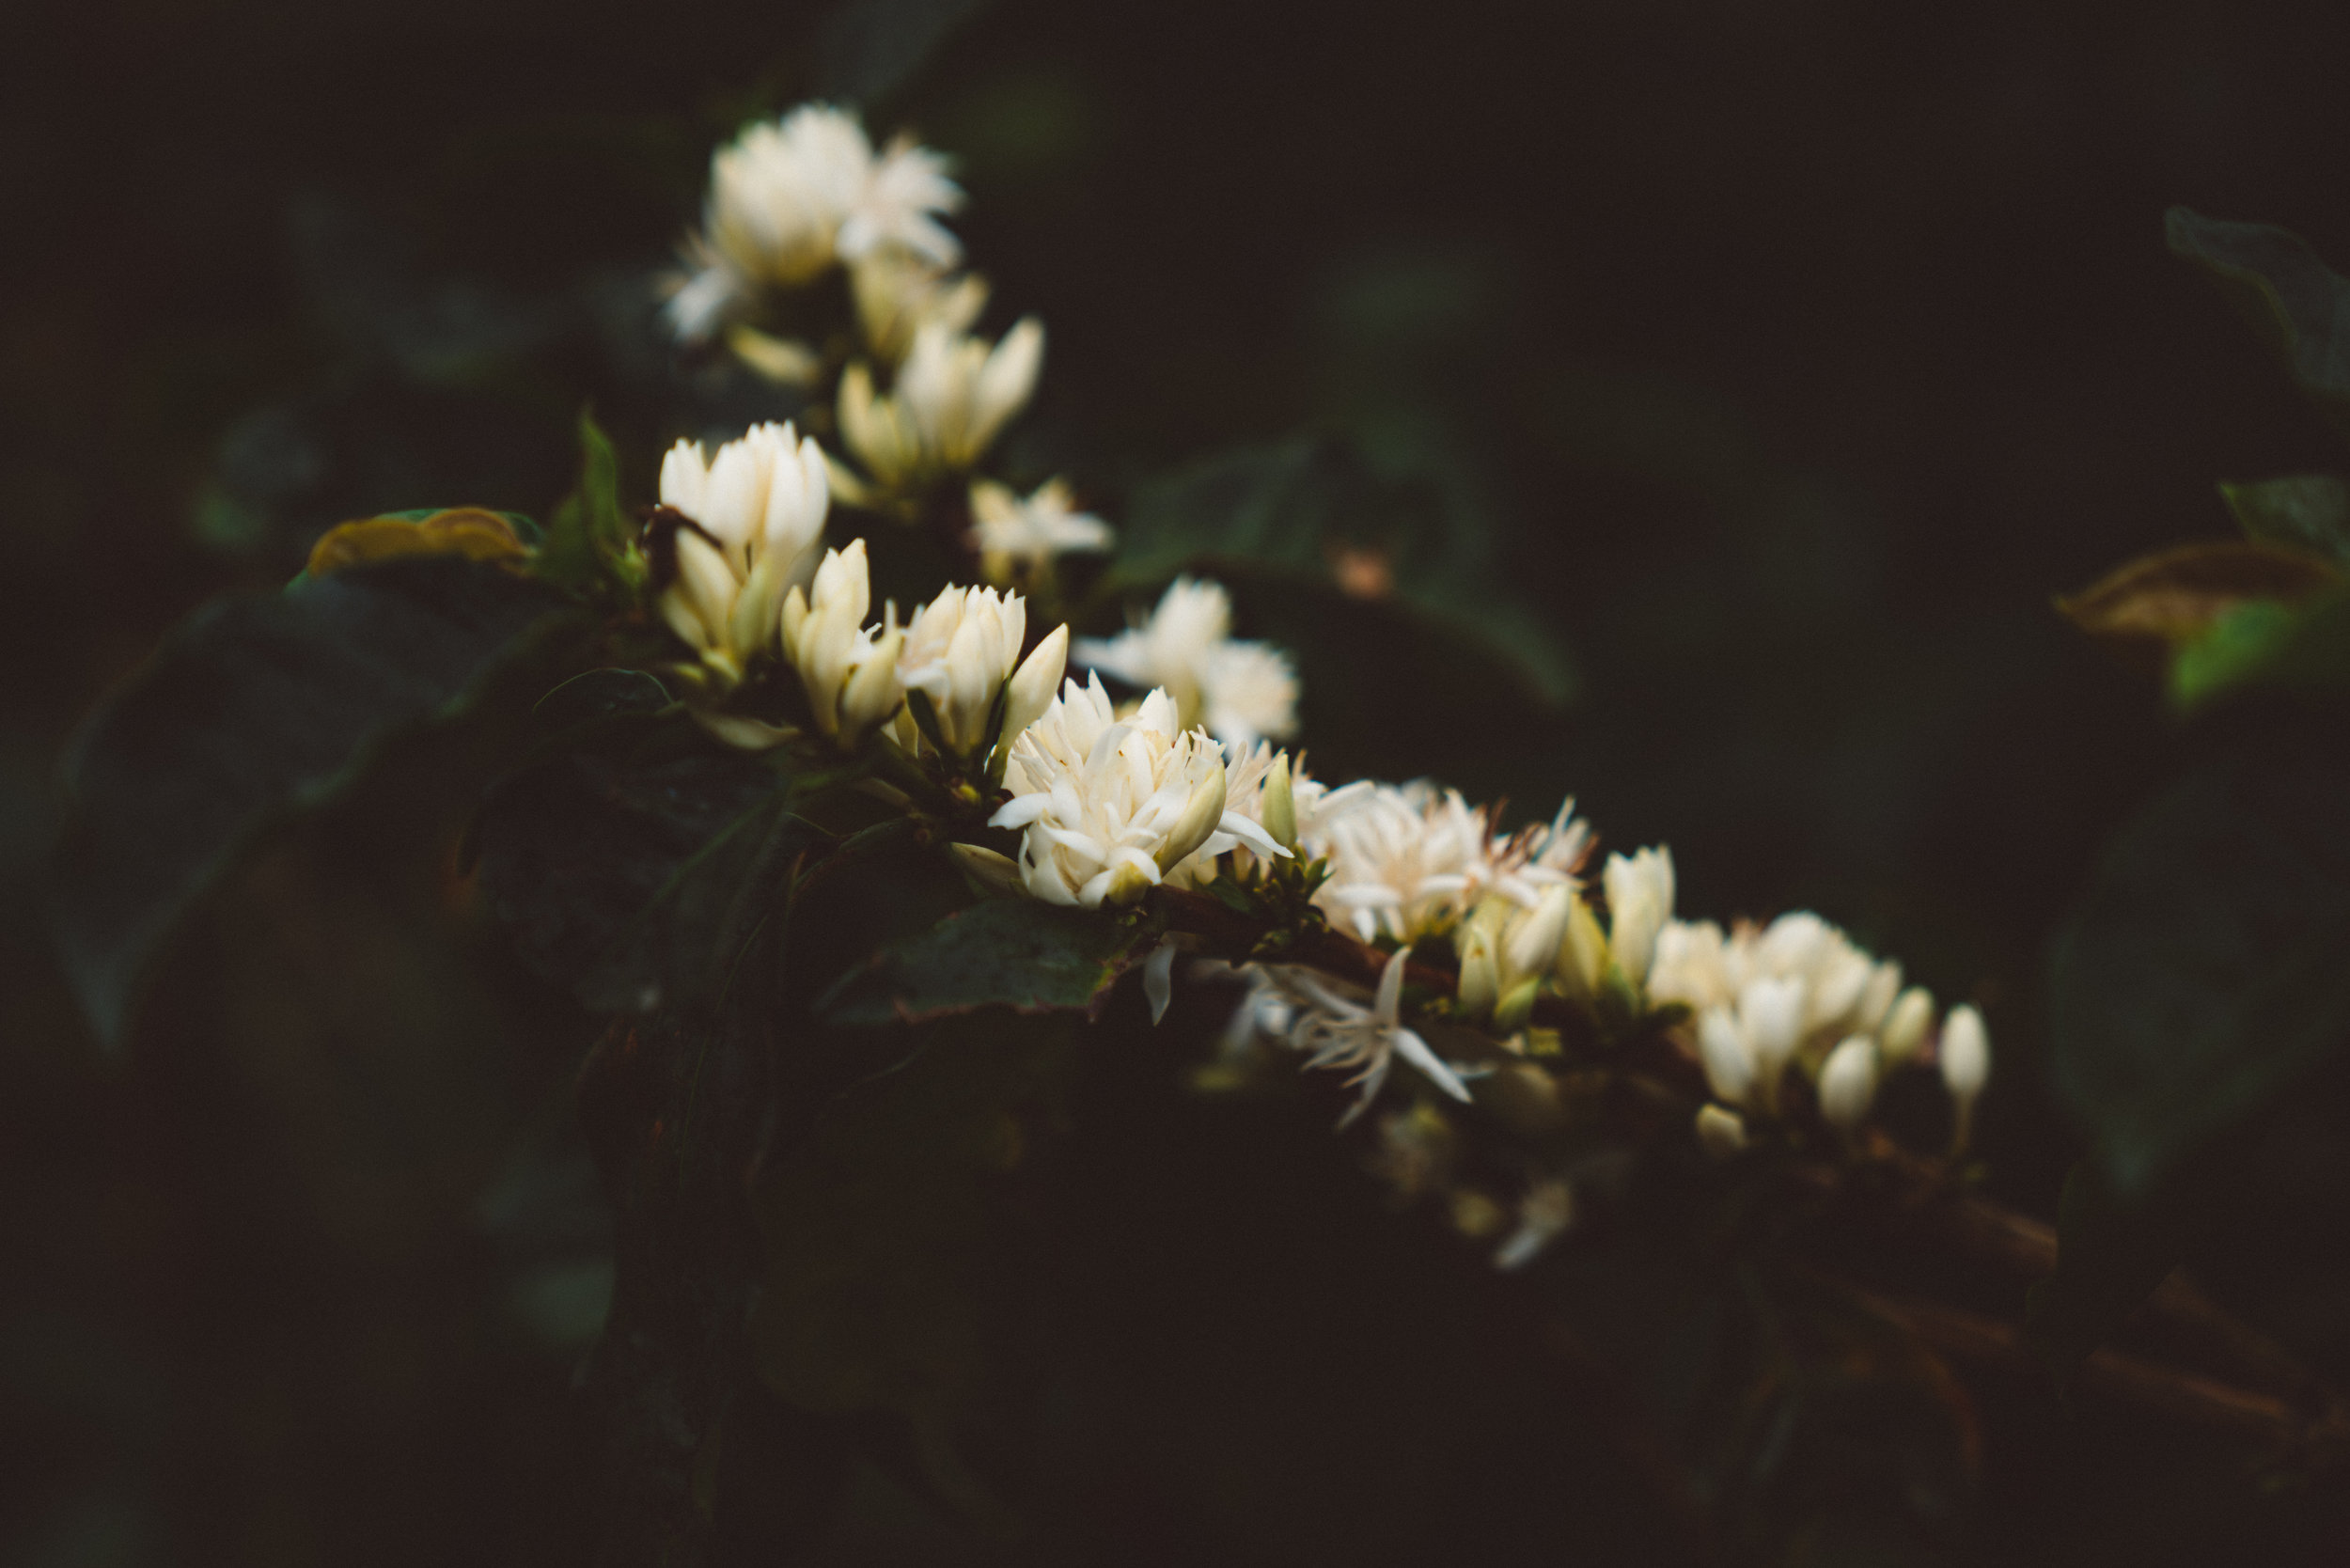 Flowers of the coffee plant.